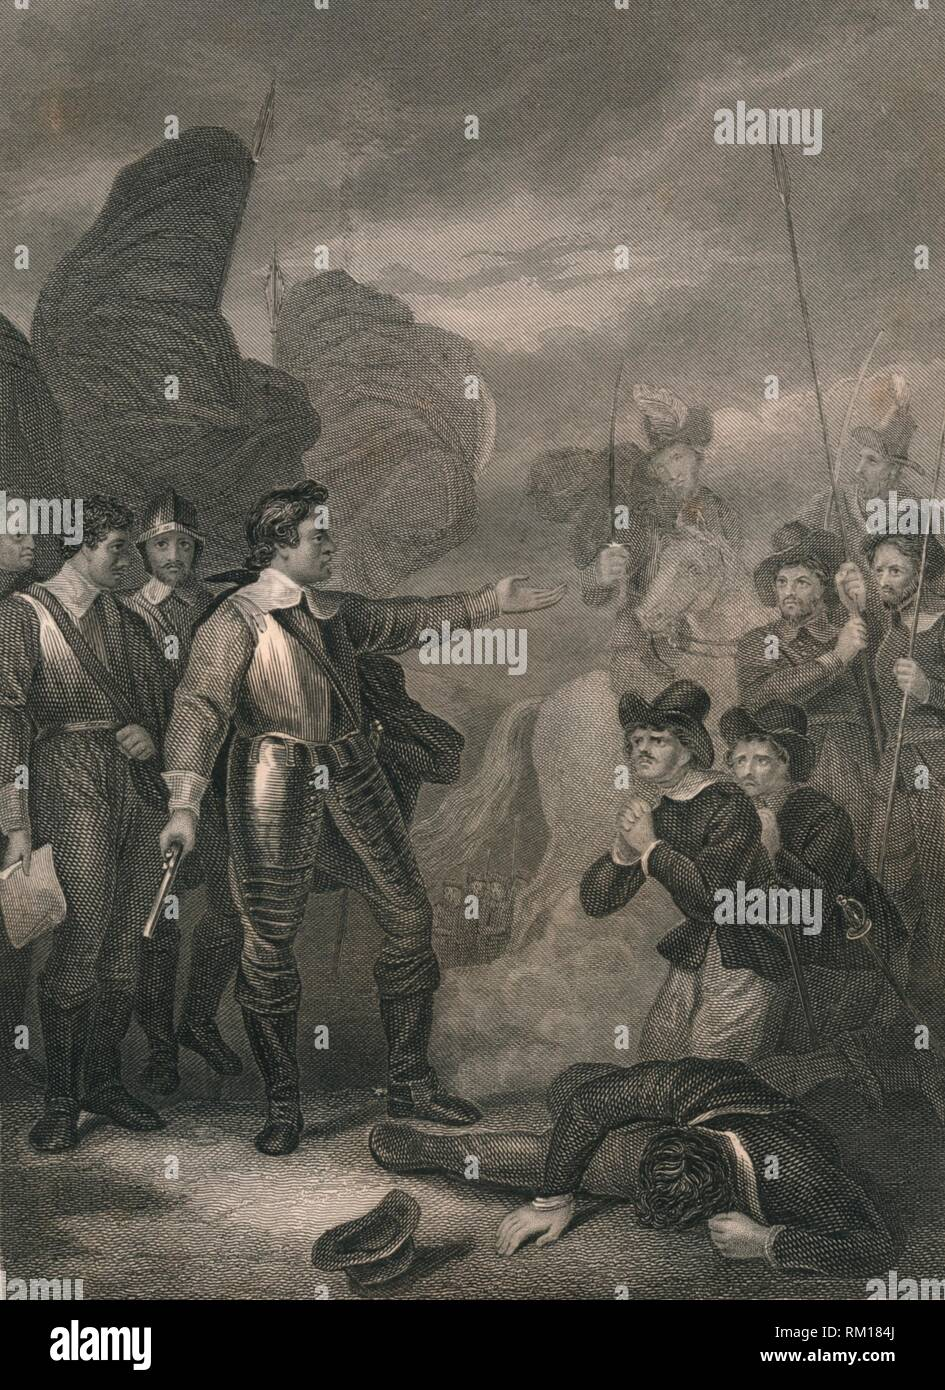 'Cromwell Suppressing The Mutiny in the Army', c1640s, (mid 19th century). Oliver Cromwell (1599-1658), English military leader and politician, bringing his troops under control during the English Civil War. [John Tallis & Company, London & New York] - Stock Image